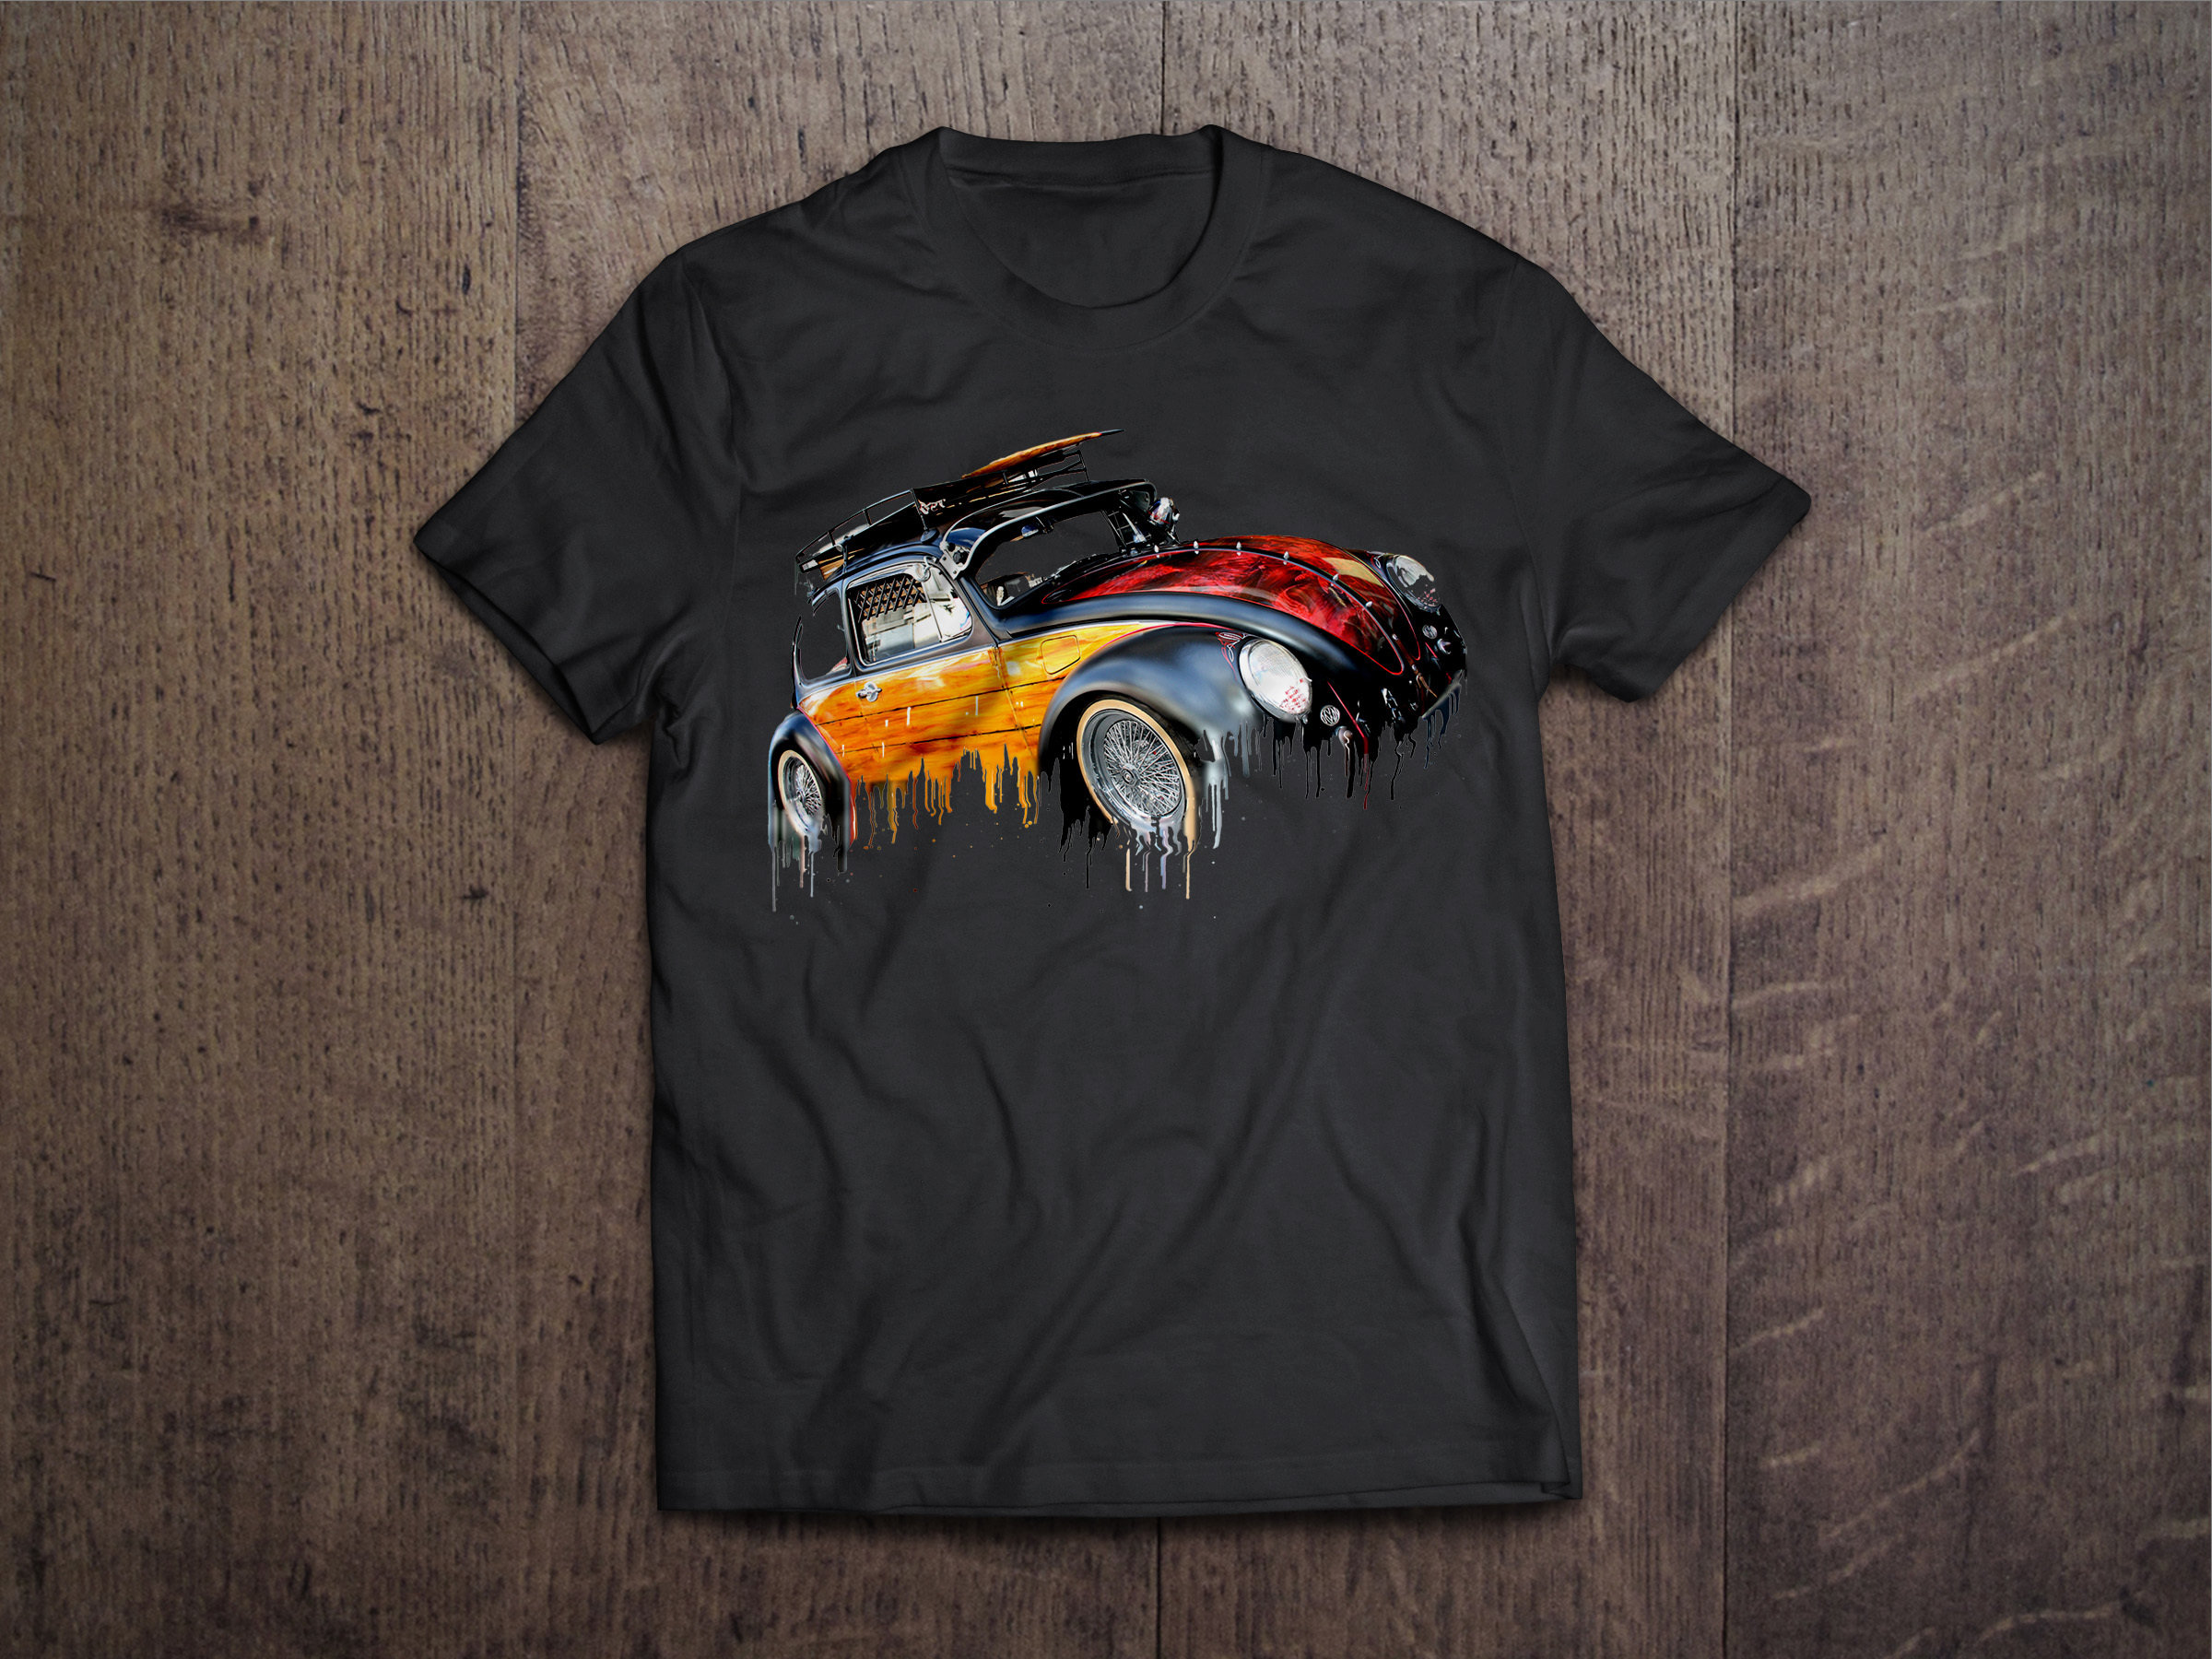 VW Beetle Liquid Metal VW Liquid Metal Beetle Tshirt